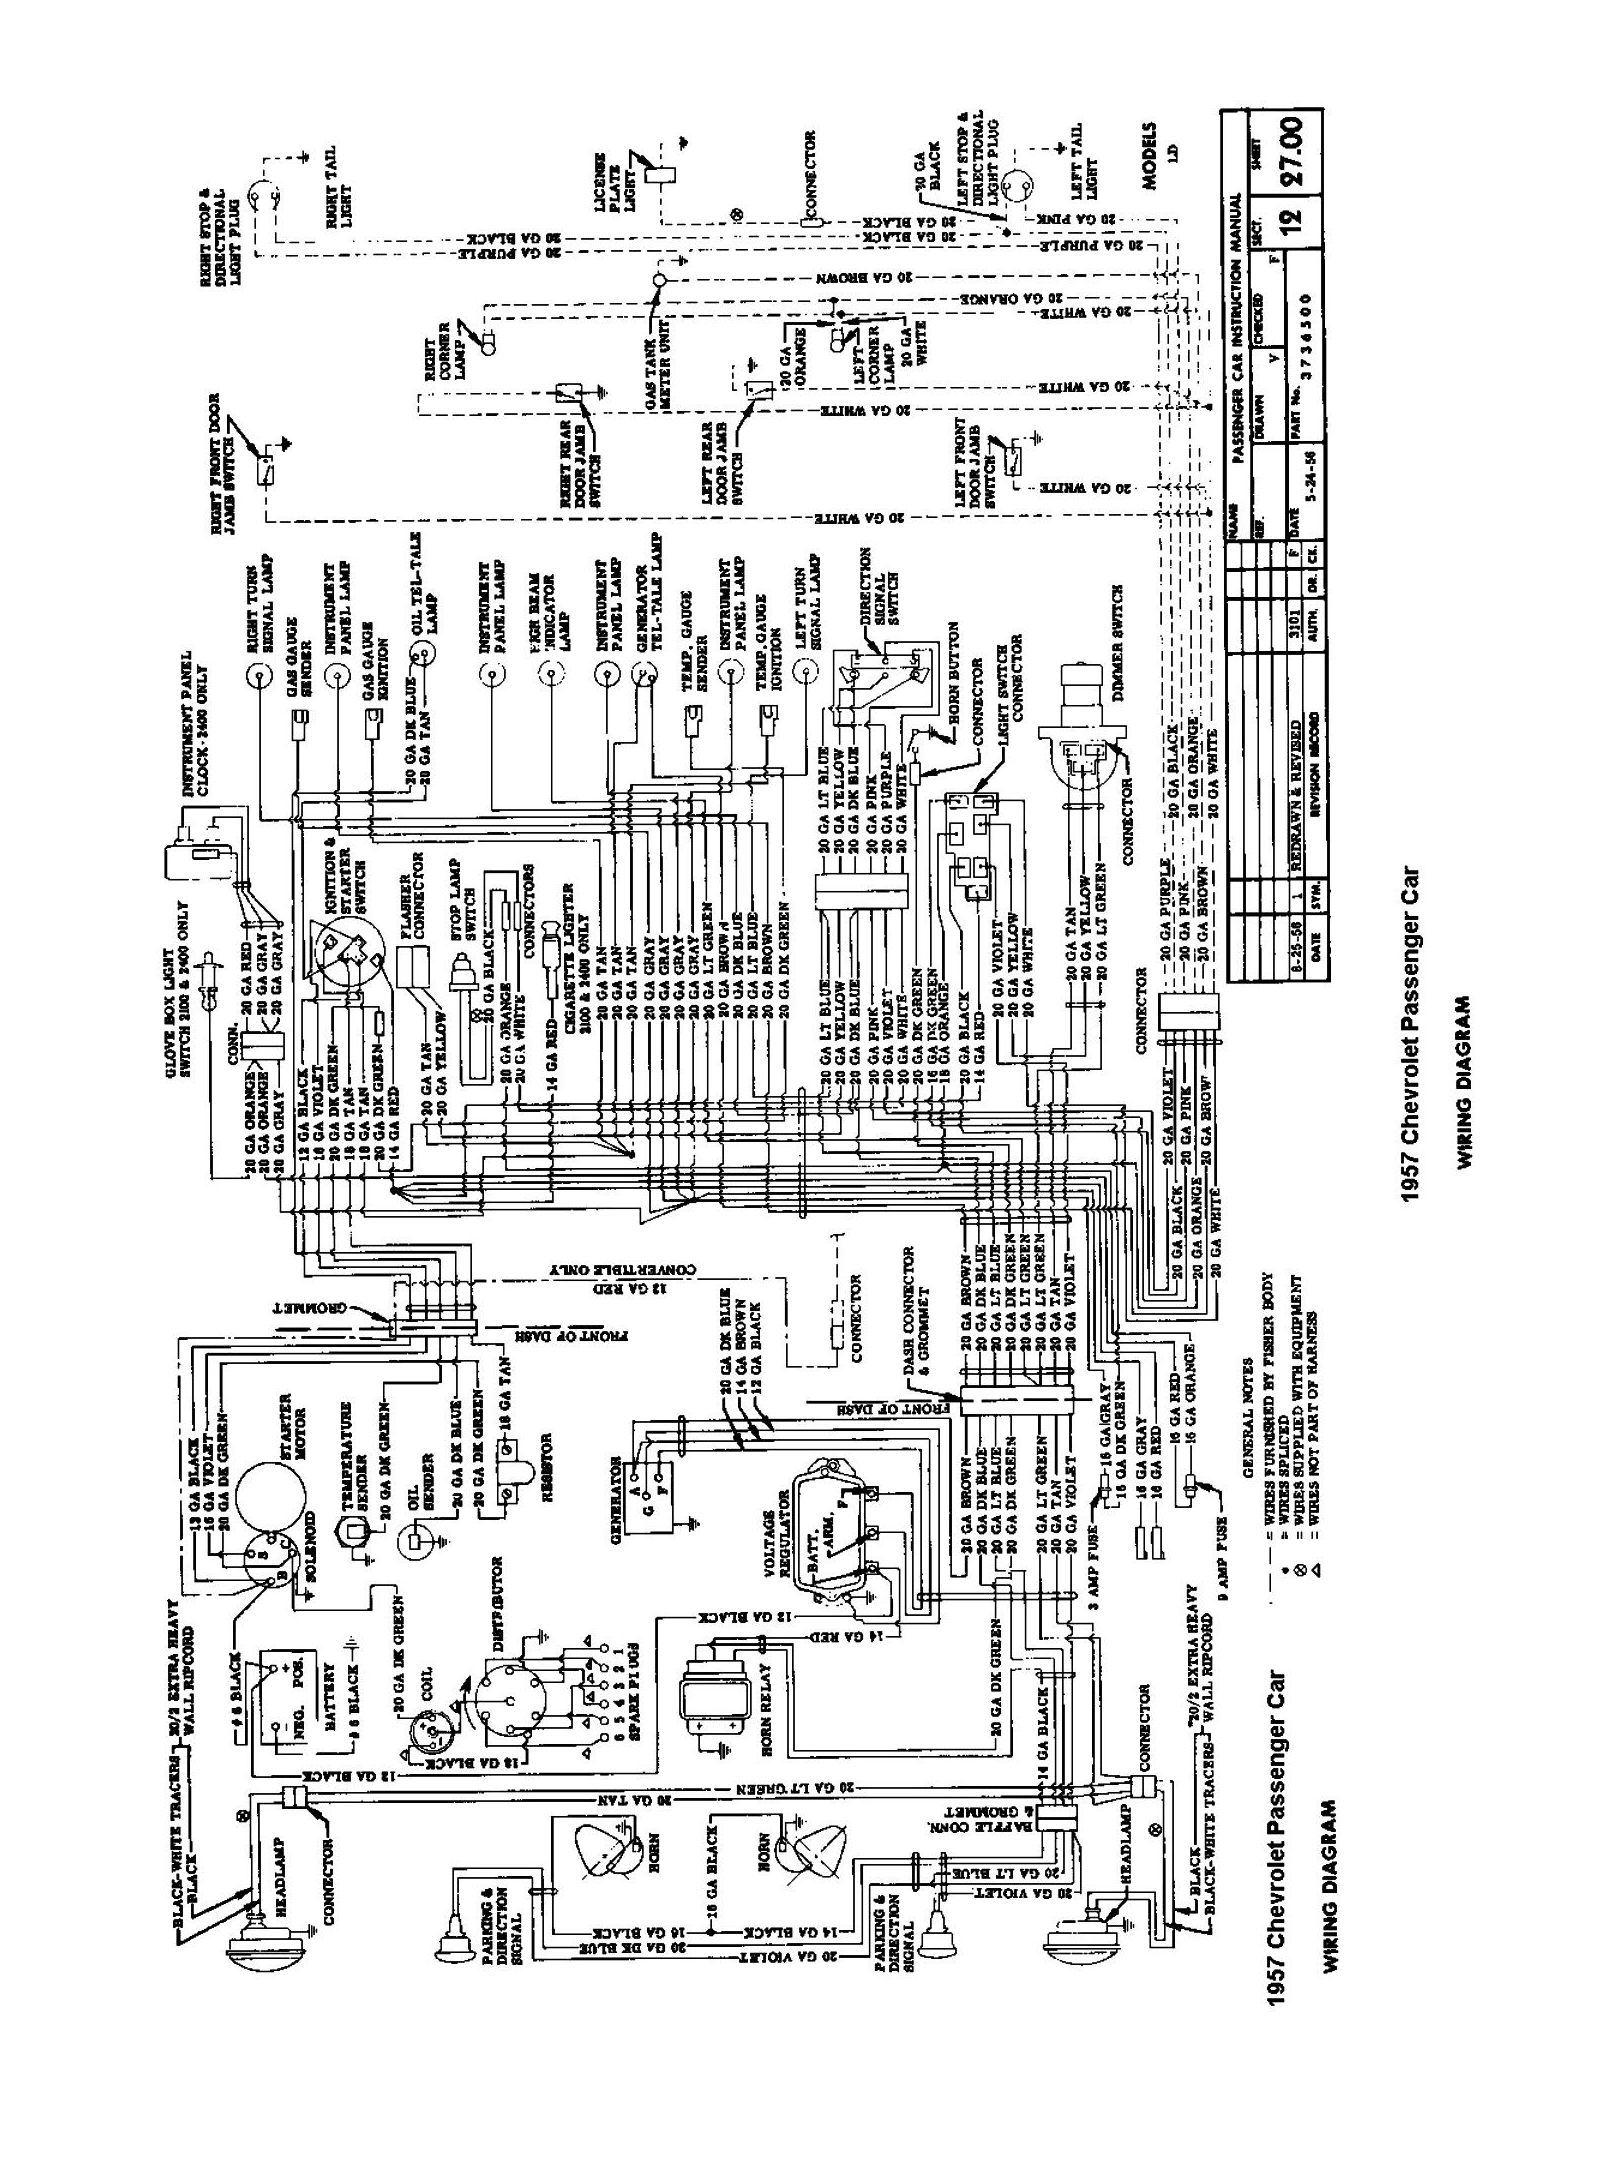 hight resolution of wiring diagram for 1957 chevrolet bel air wiring diagram paper 57 chevy wiring diagram 57 chevys